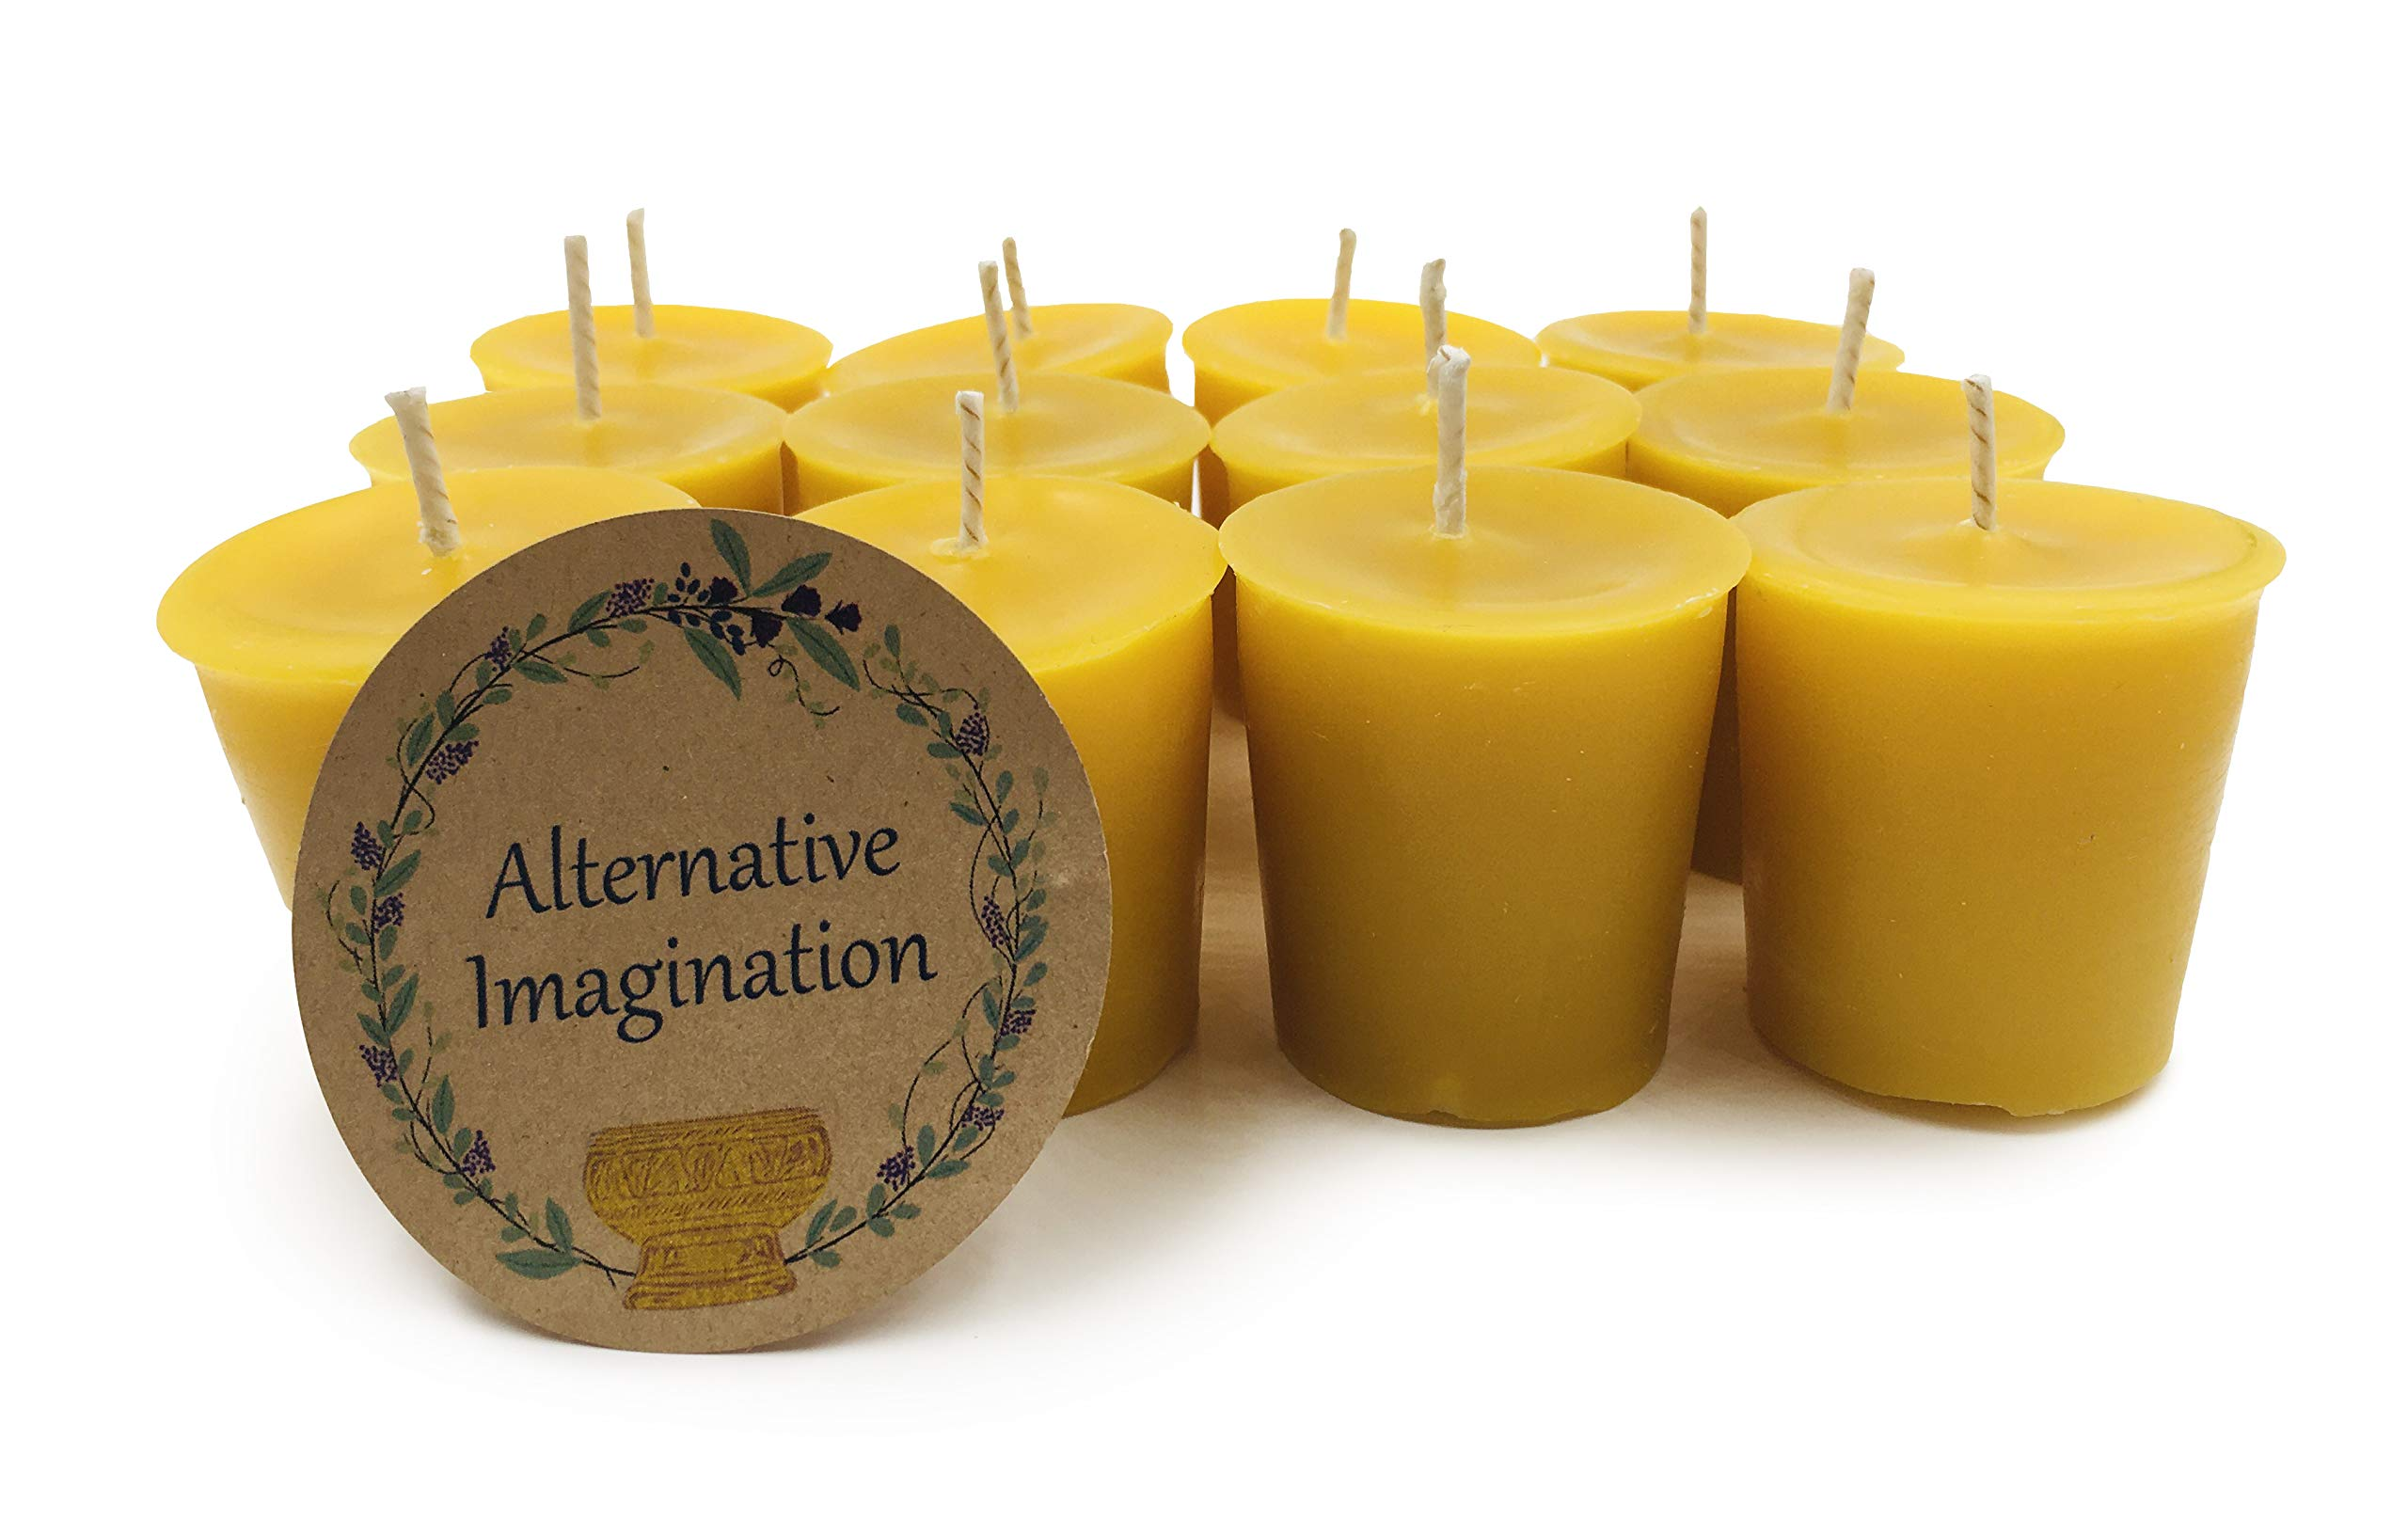 Alternative Imagination Premium 100% Pure, Natural Beeswax Votive Candles - Pack of 12 by Alternative Imagination